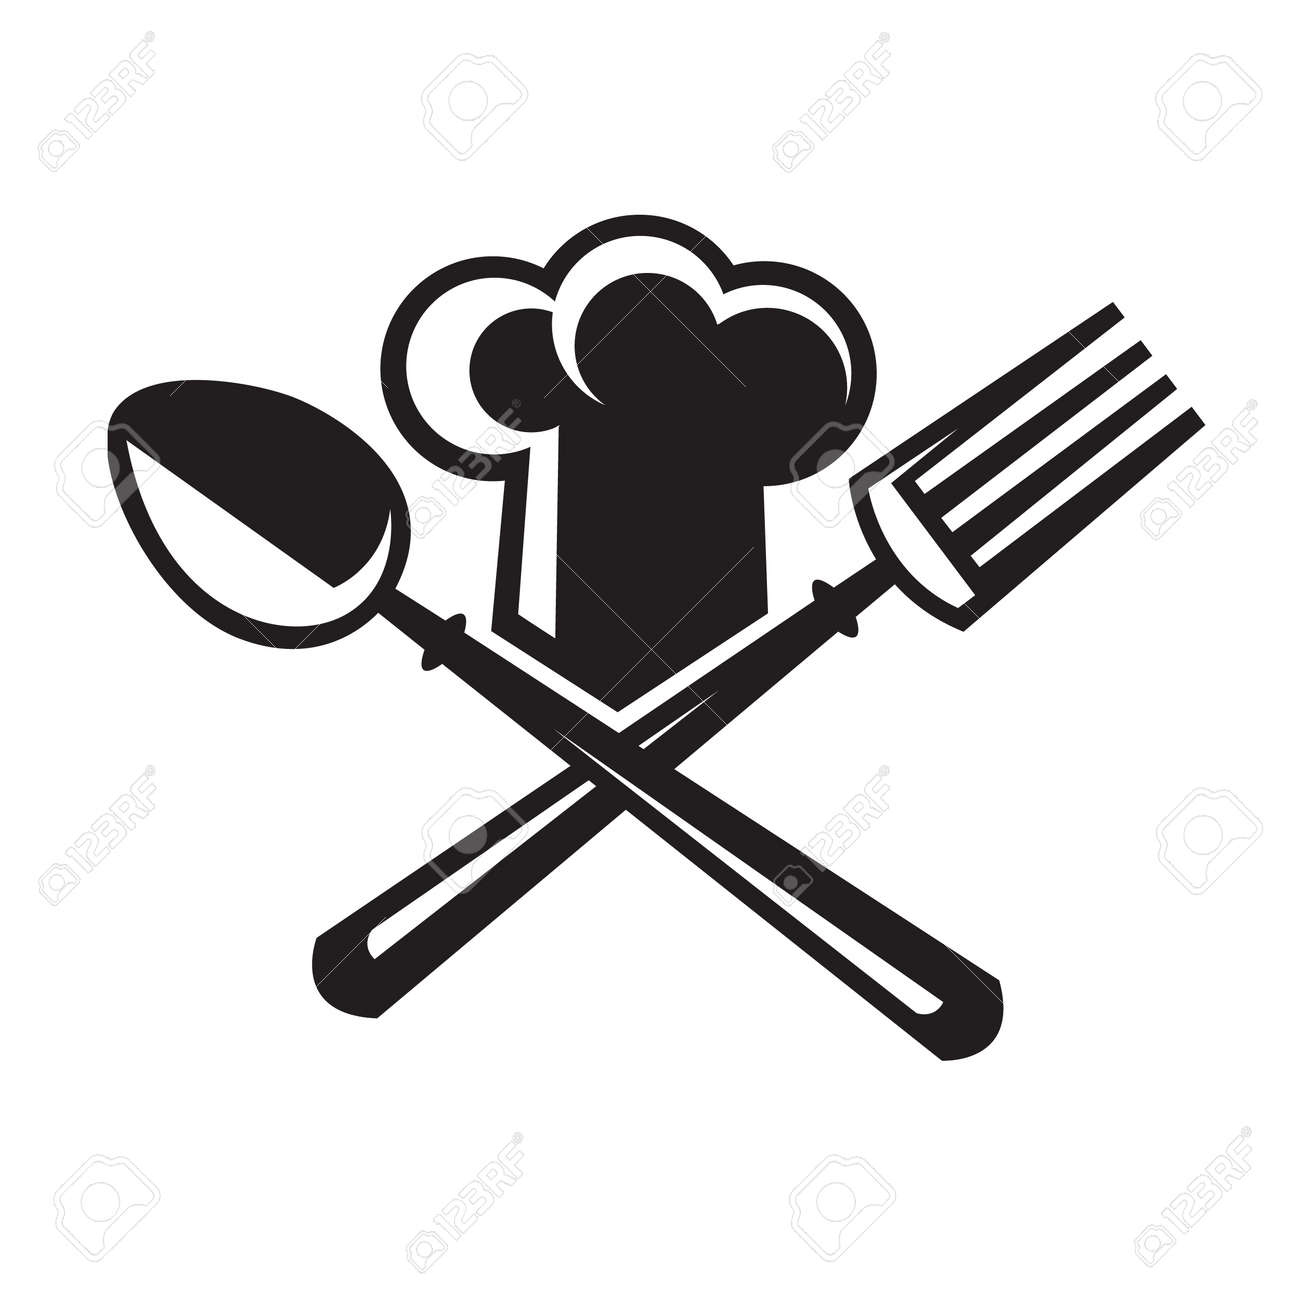 Monochre Image Of Chef Hat With Spoon And Fork Royalty Free ...